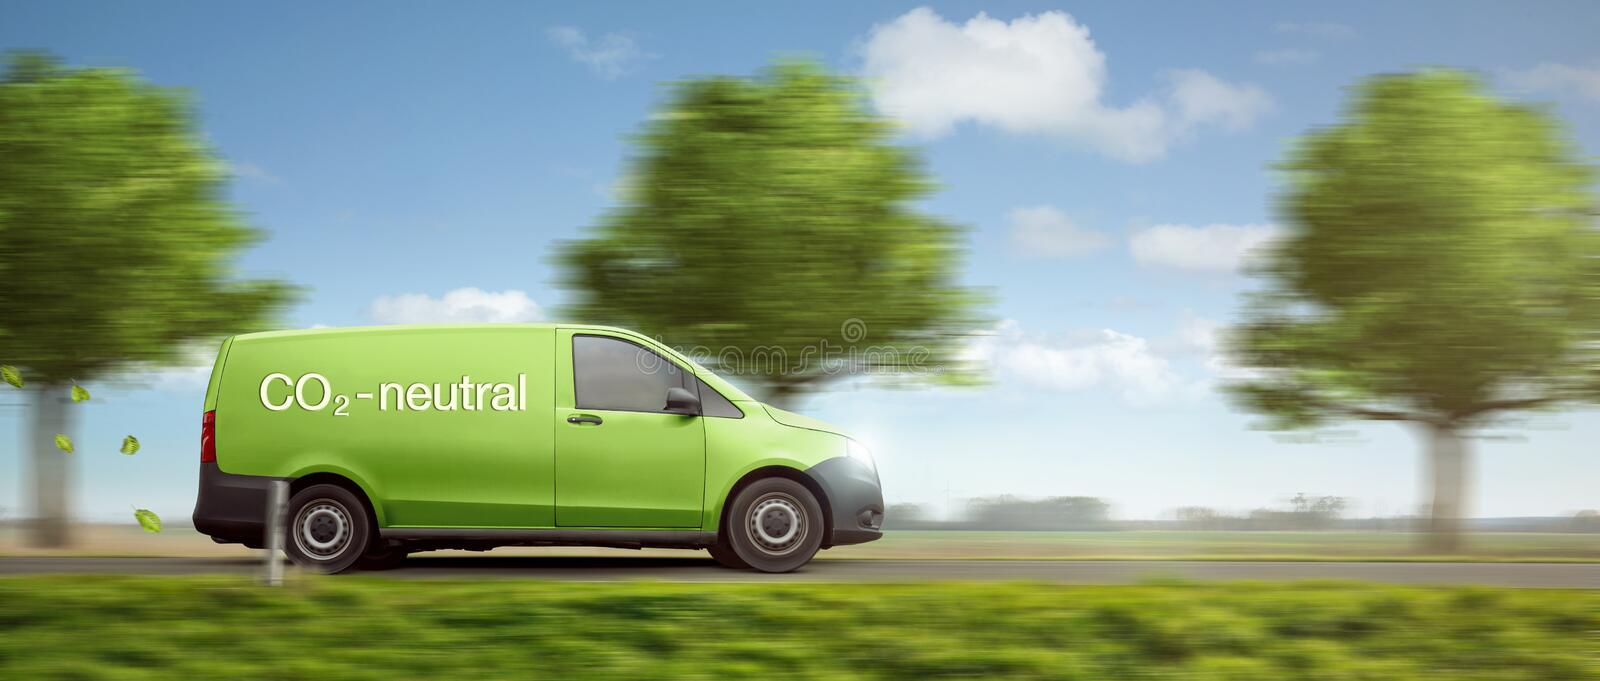 Carbon-neutral delivery with a green van driving on a country road with green trees royalty free stock photo